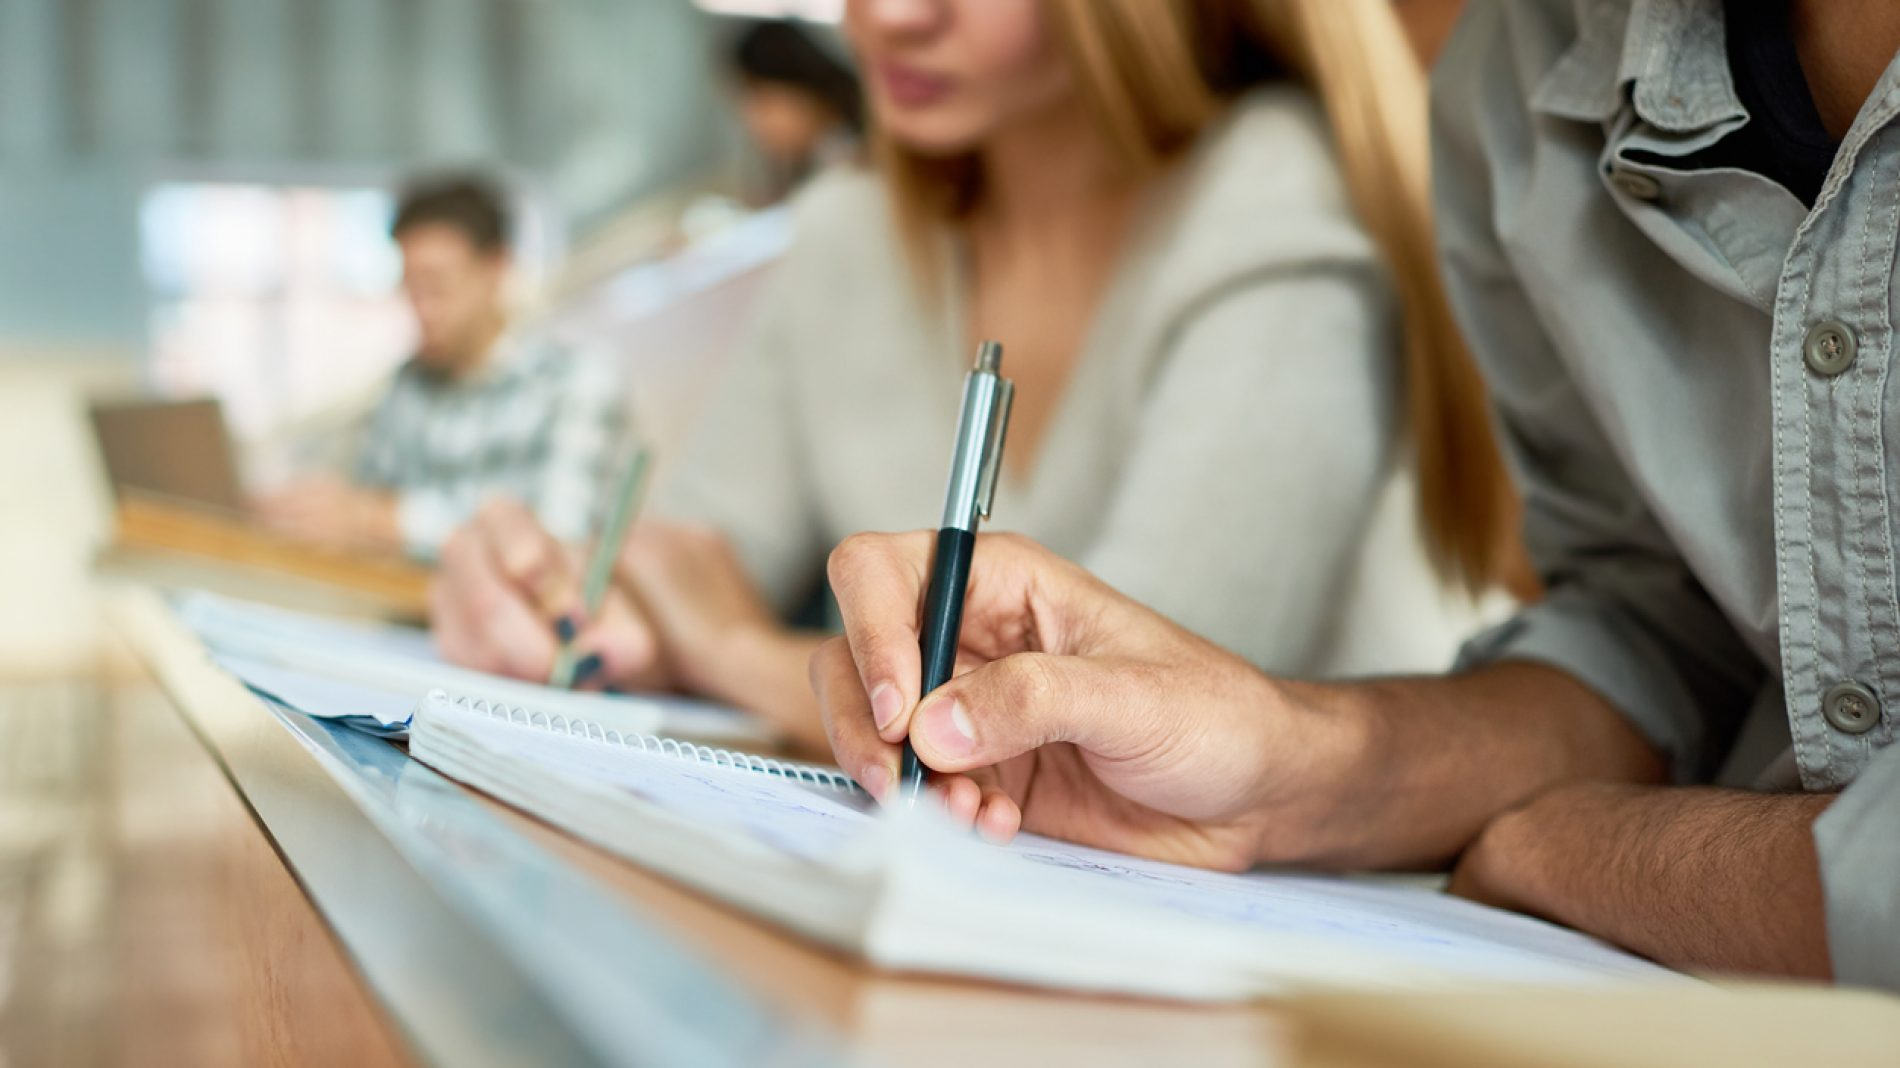 Students writing in a notebook